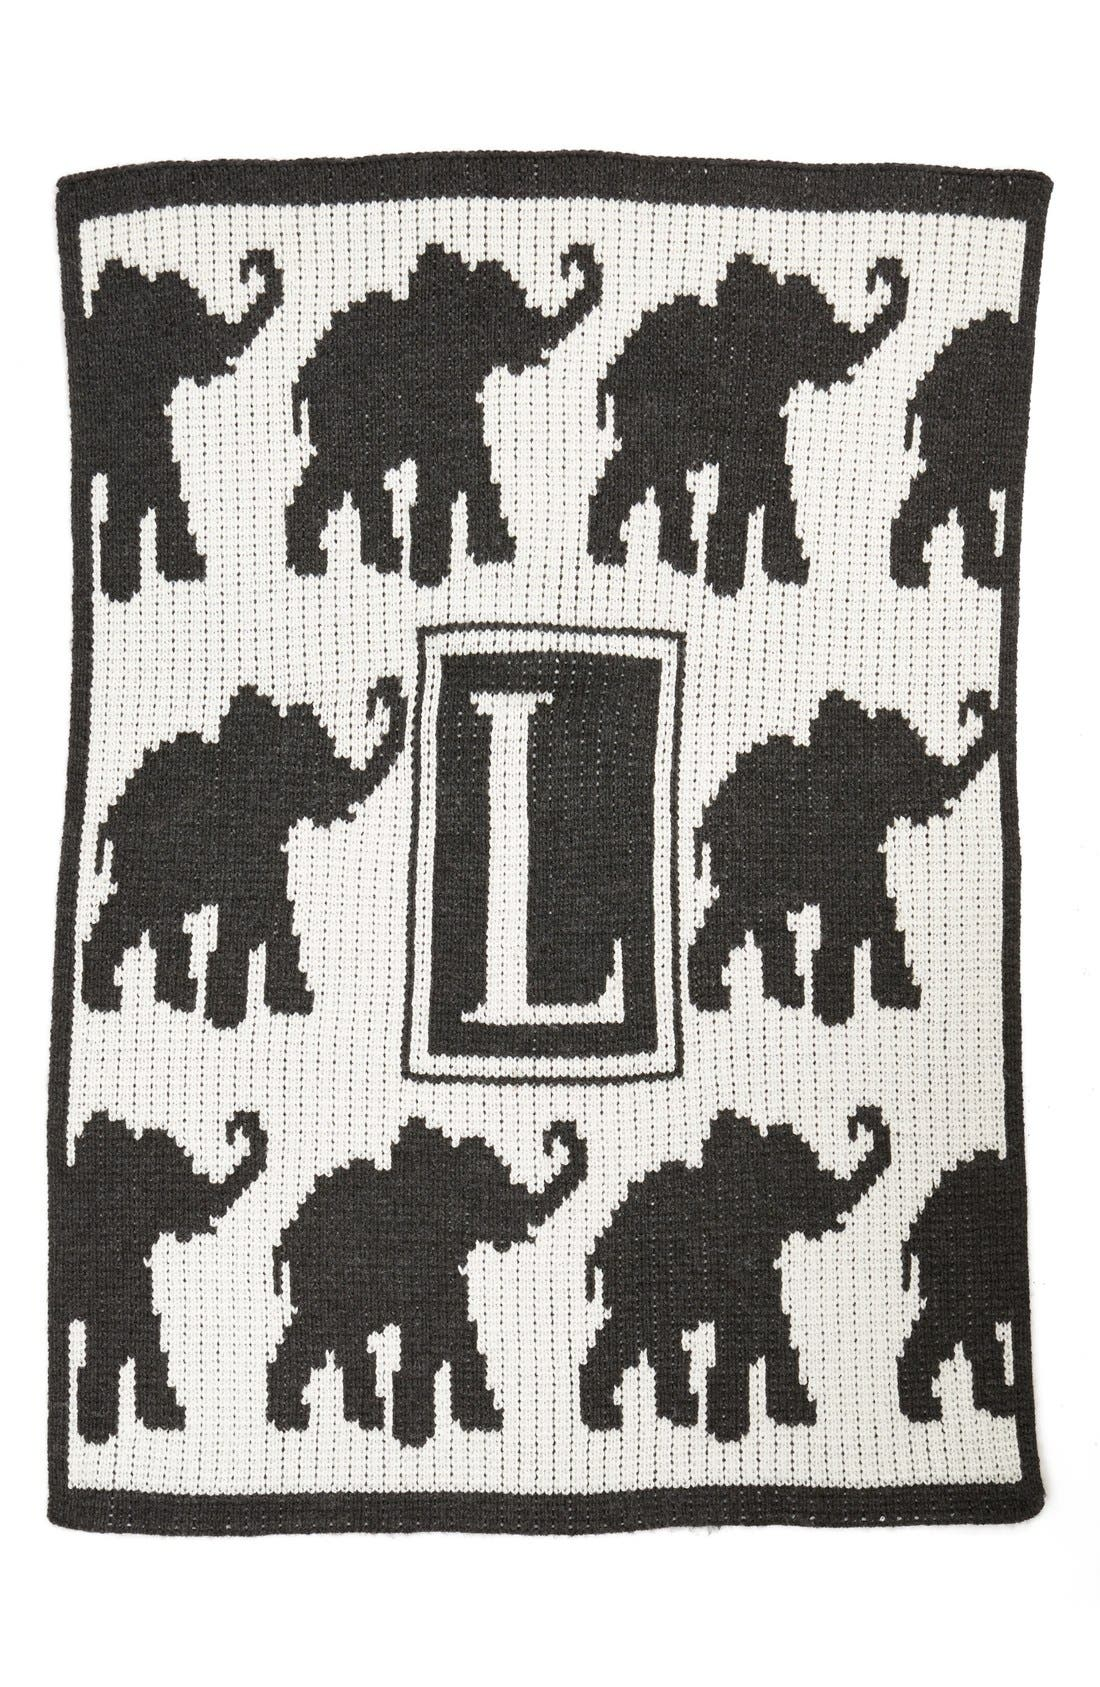 Alternate Image 1 Selected - Butterscotch Blankees 'Walking Elephants' Personalized Crib Blanket